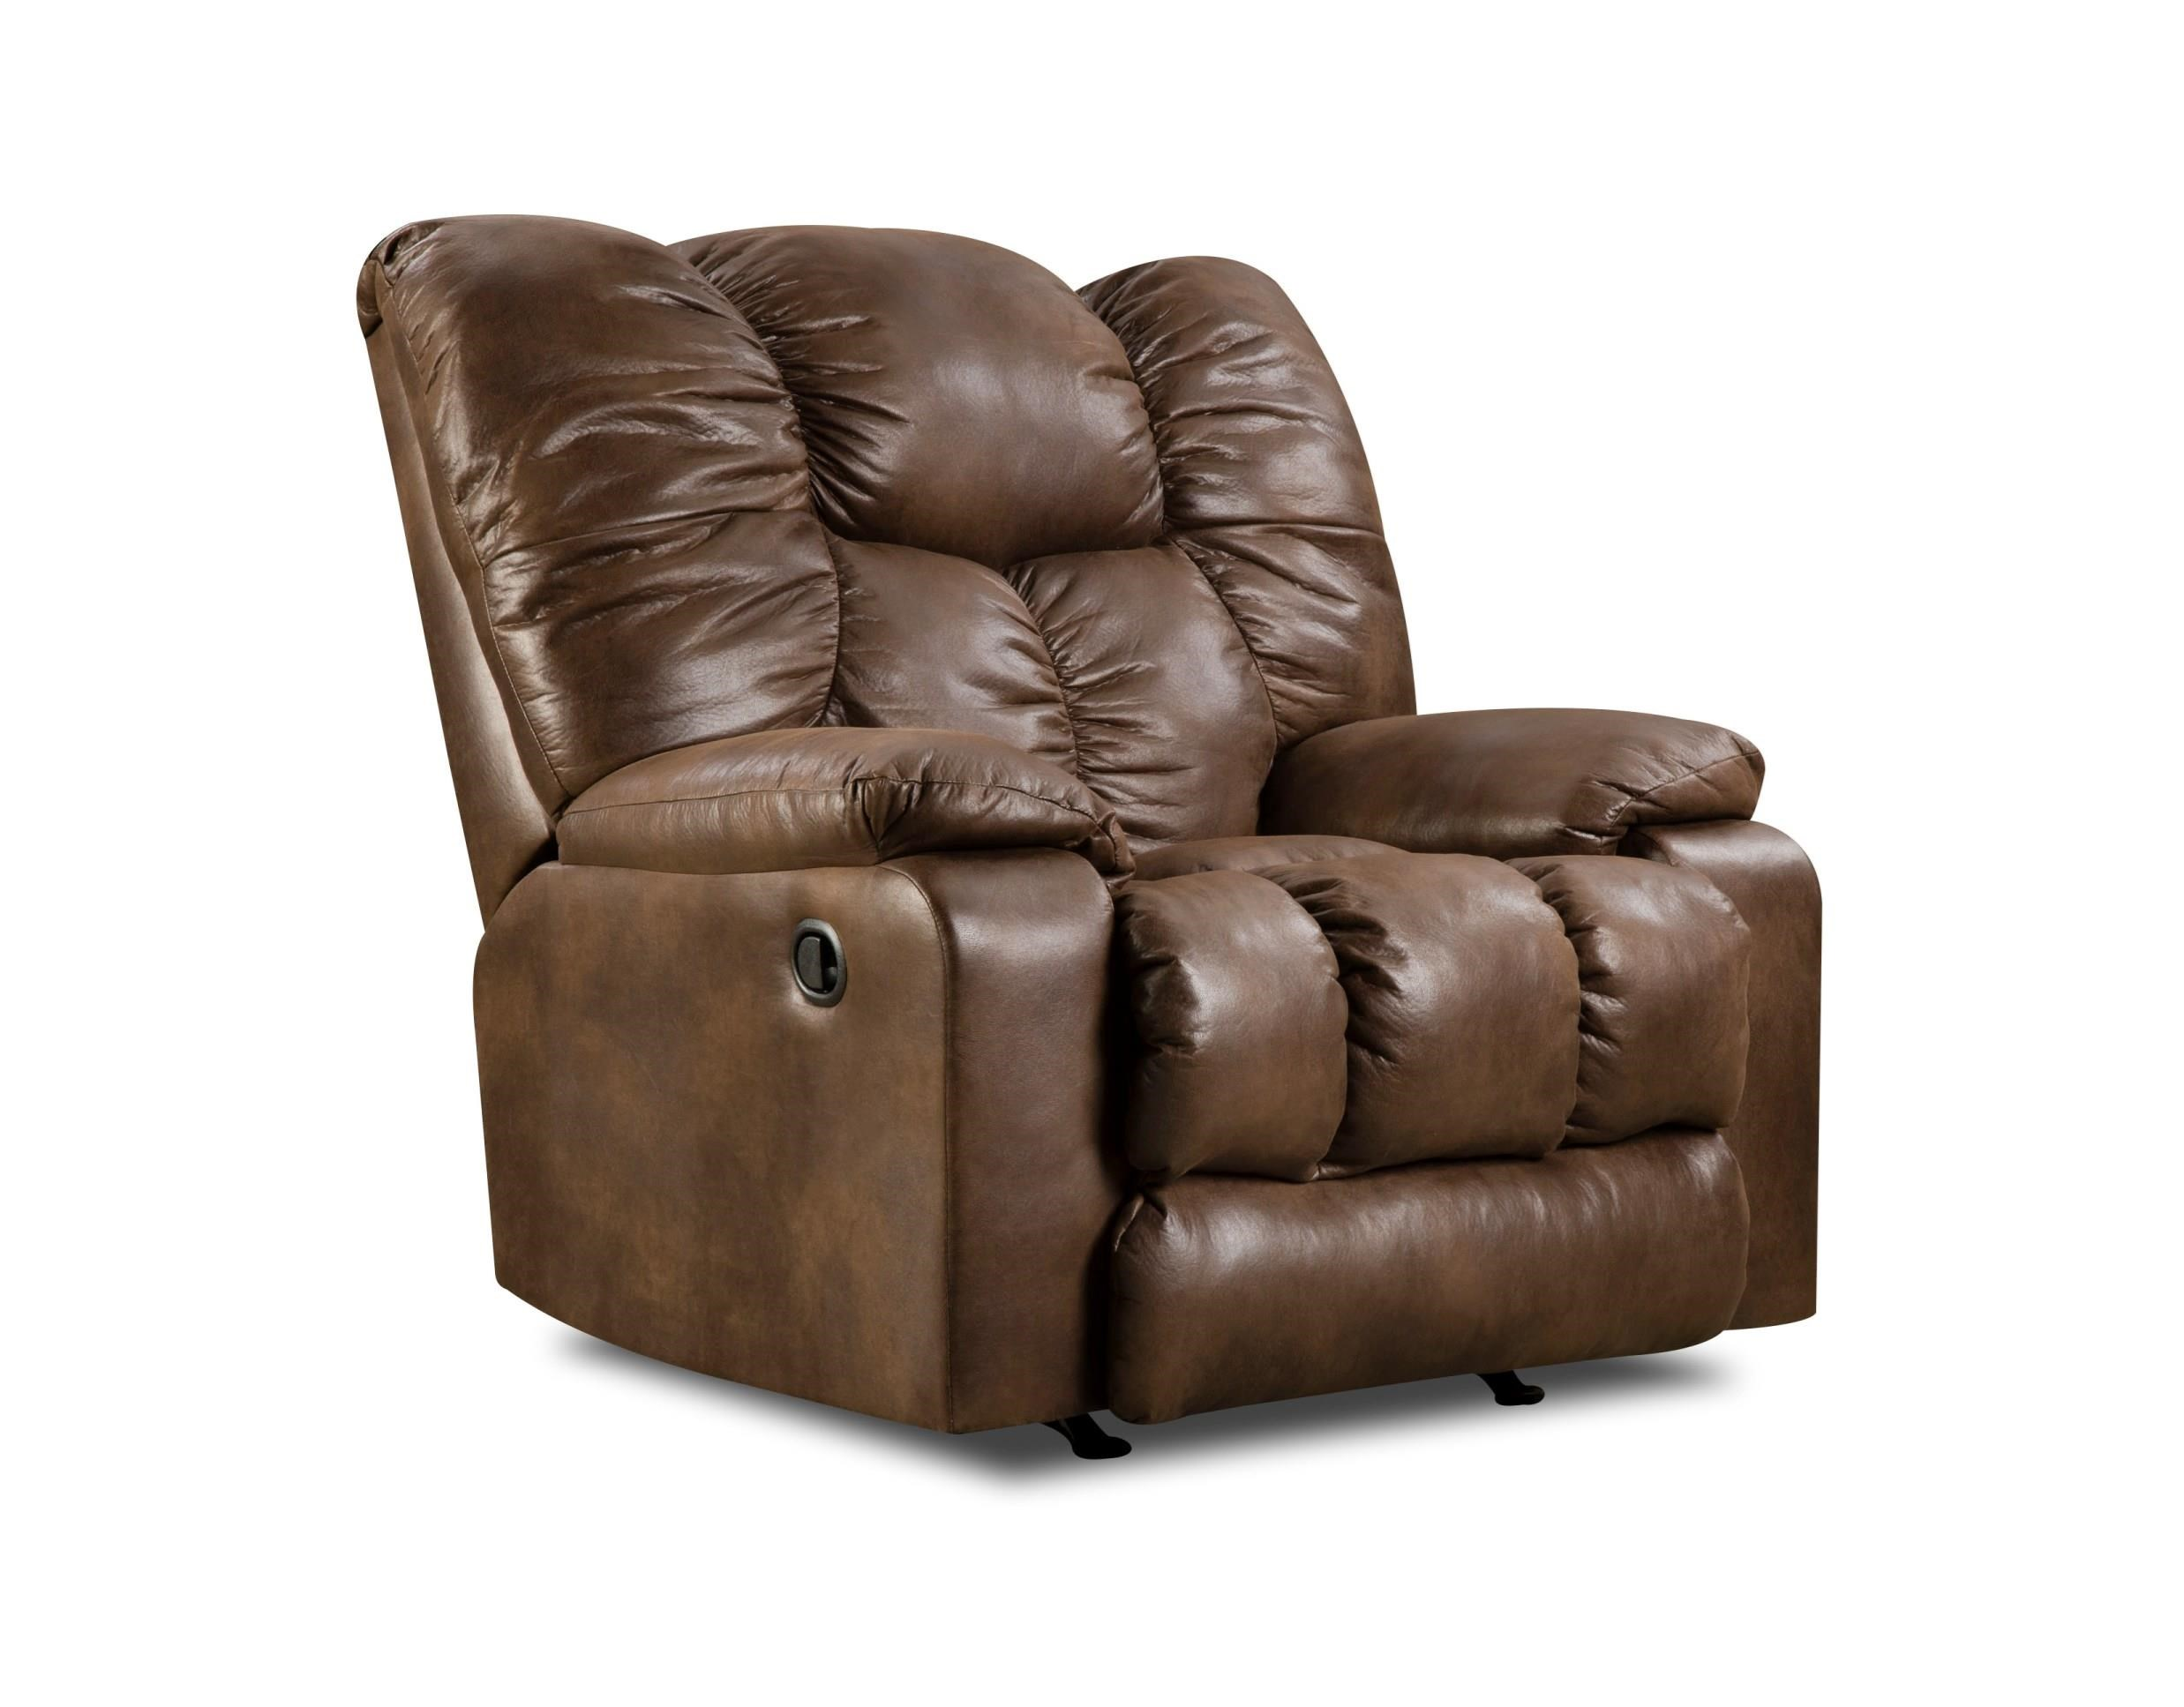 Simmons Upholstery 692M Padre Espresso - Item Number: 692M